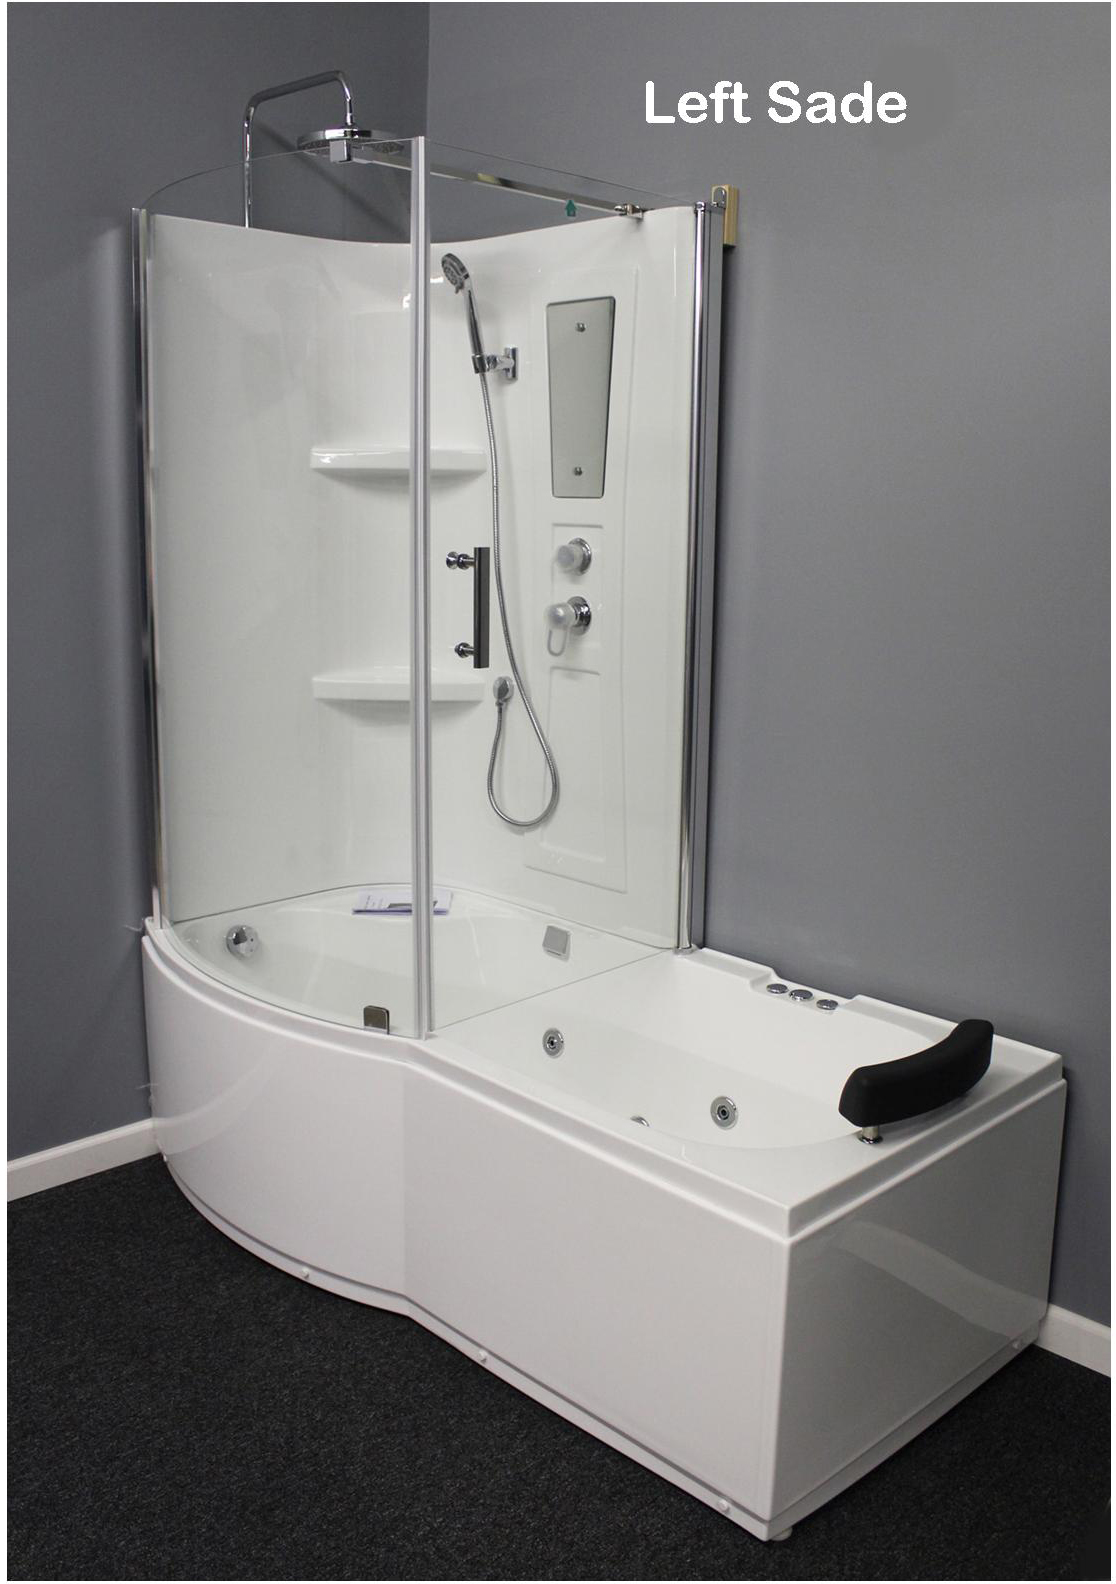 Shower Room with Deluxe Whirlpool Tub . 9045L - Constar USA